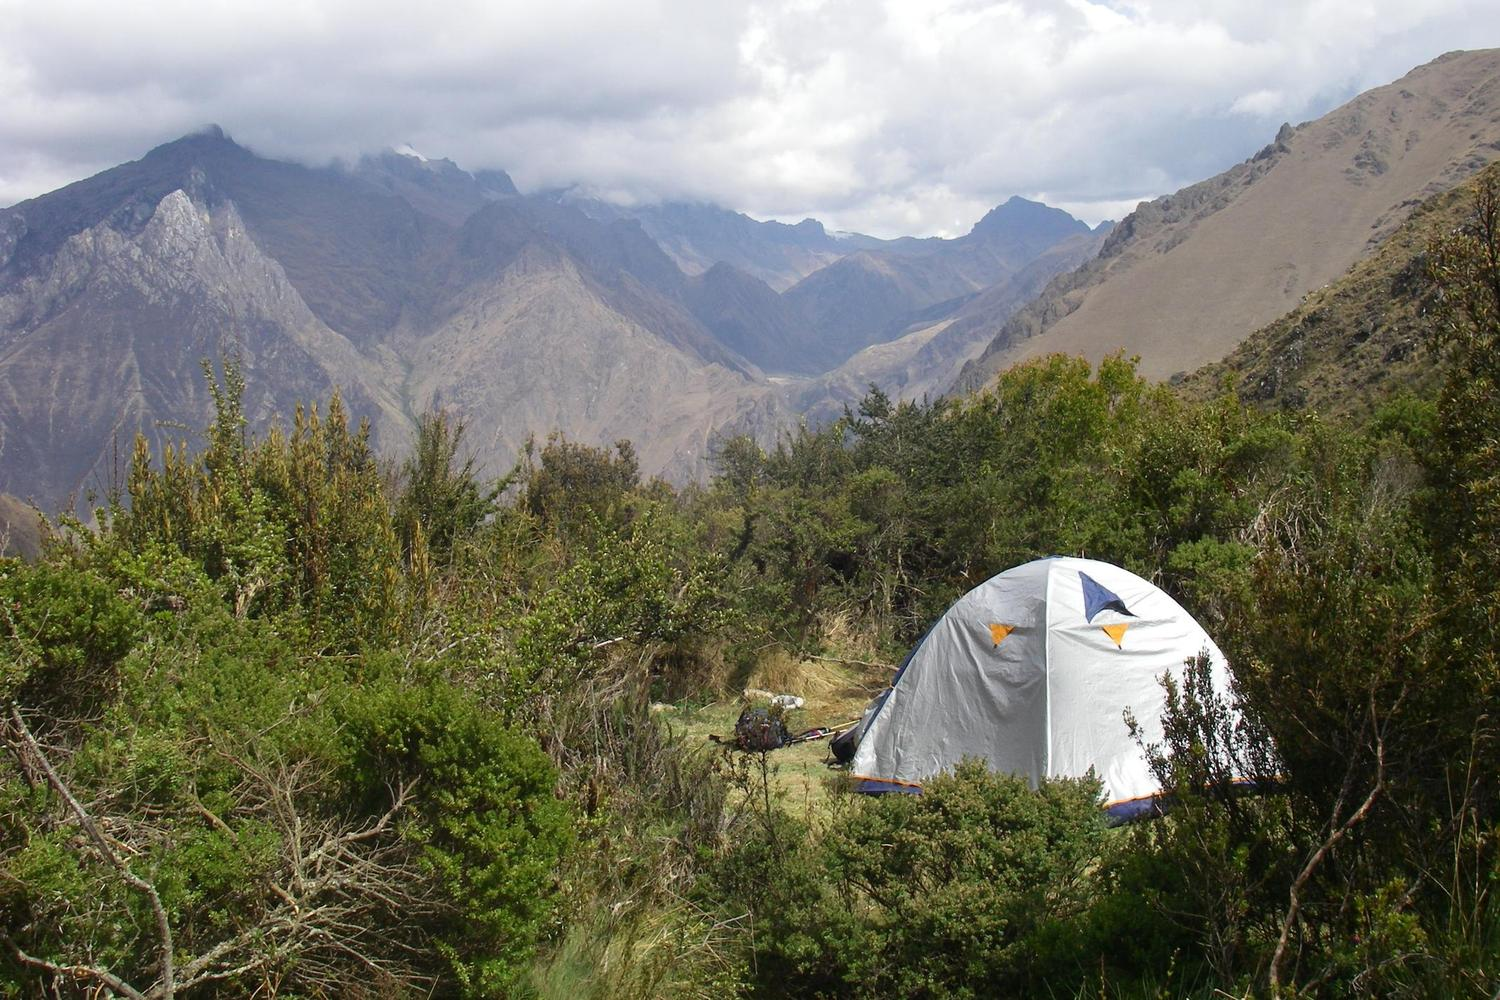 We pace our Inca Trail so that campsites are peaceful and secluded